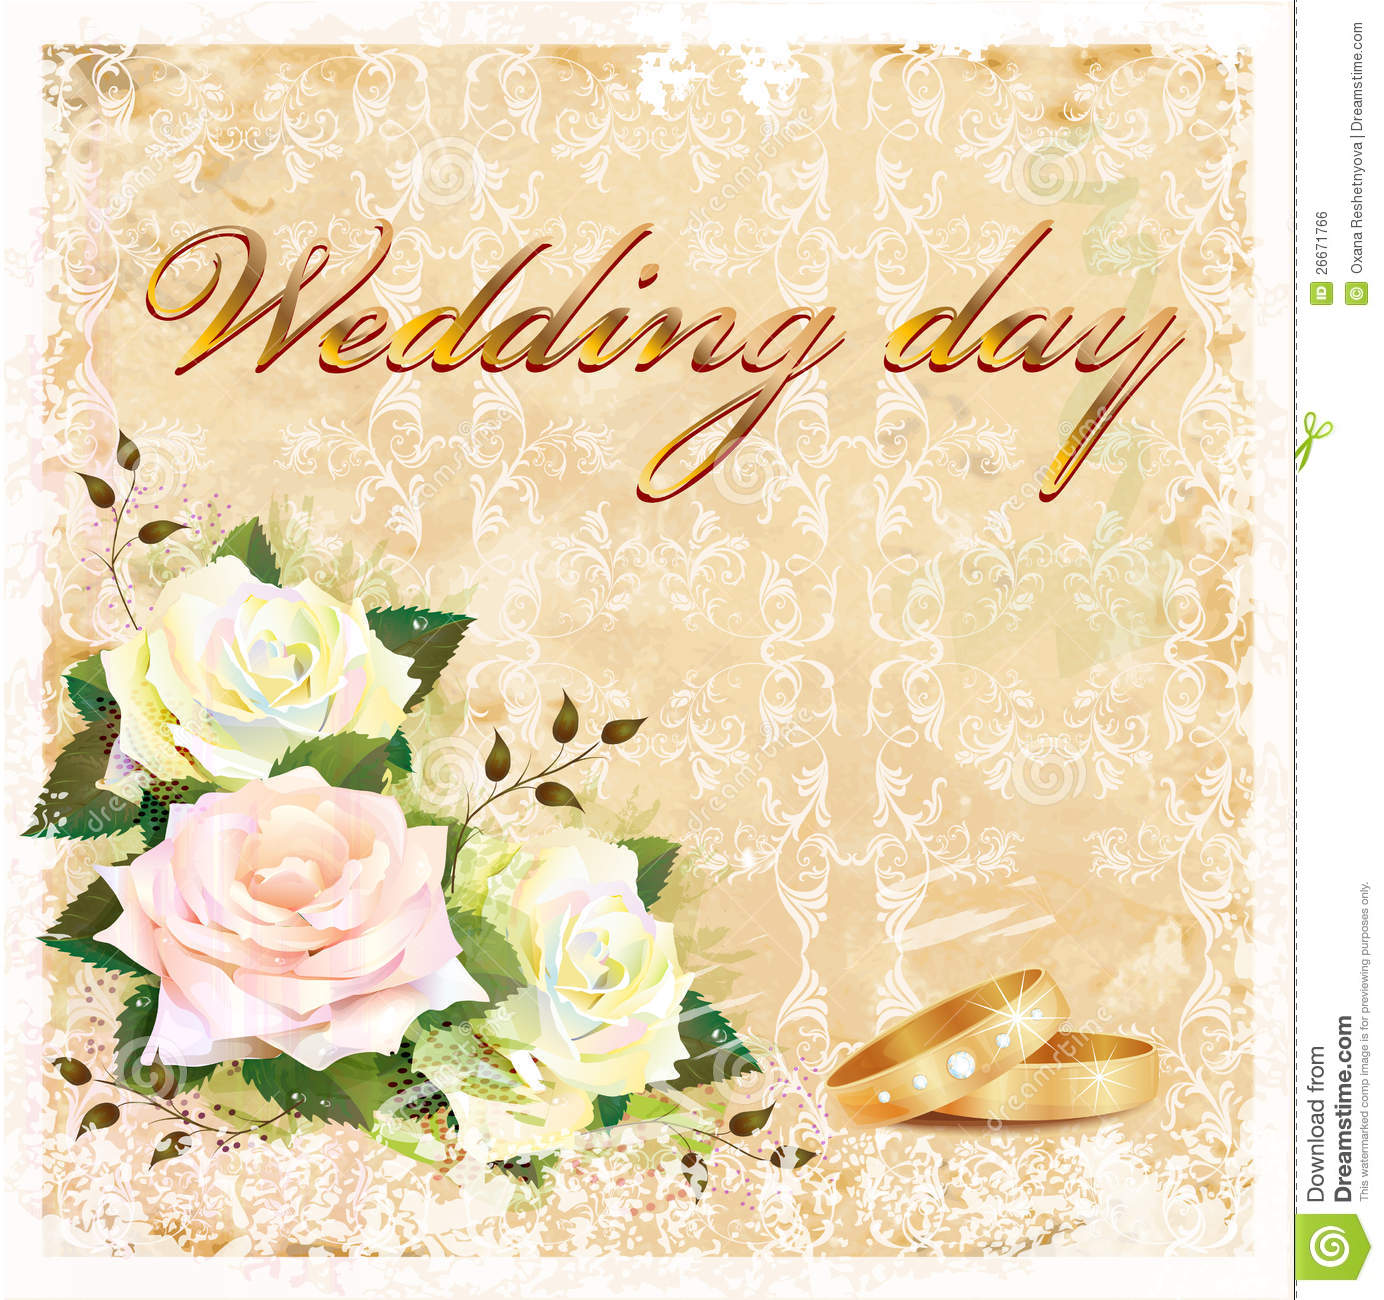 Vintage Wedding Card Royalty Free Stock Image - Image: 26671766